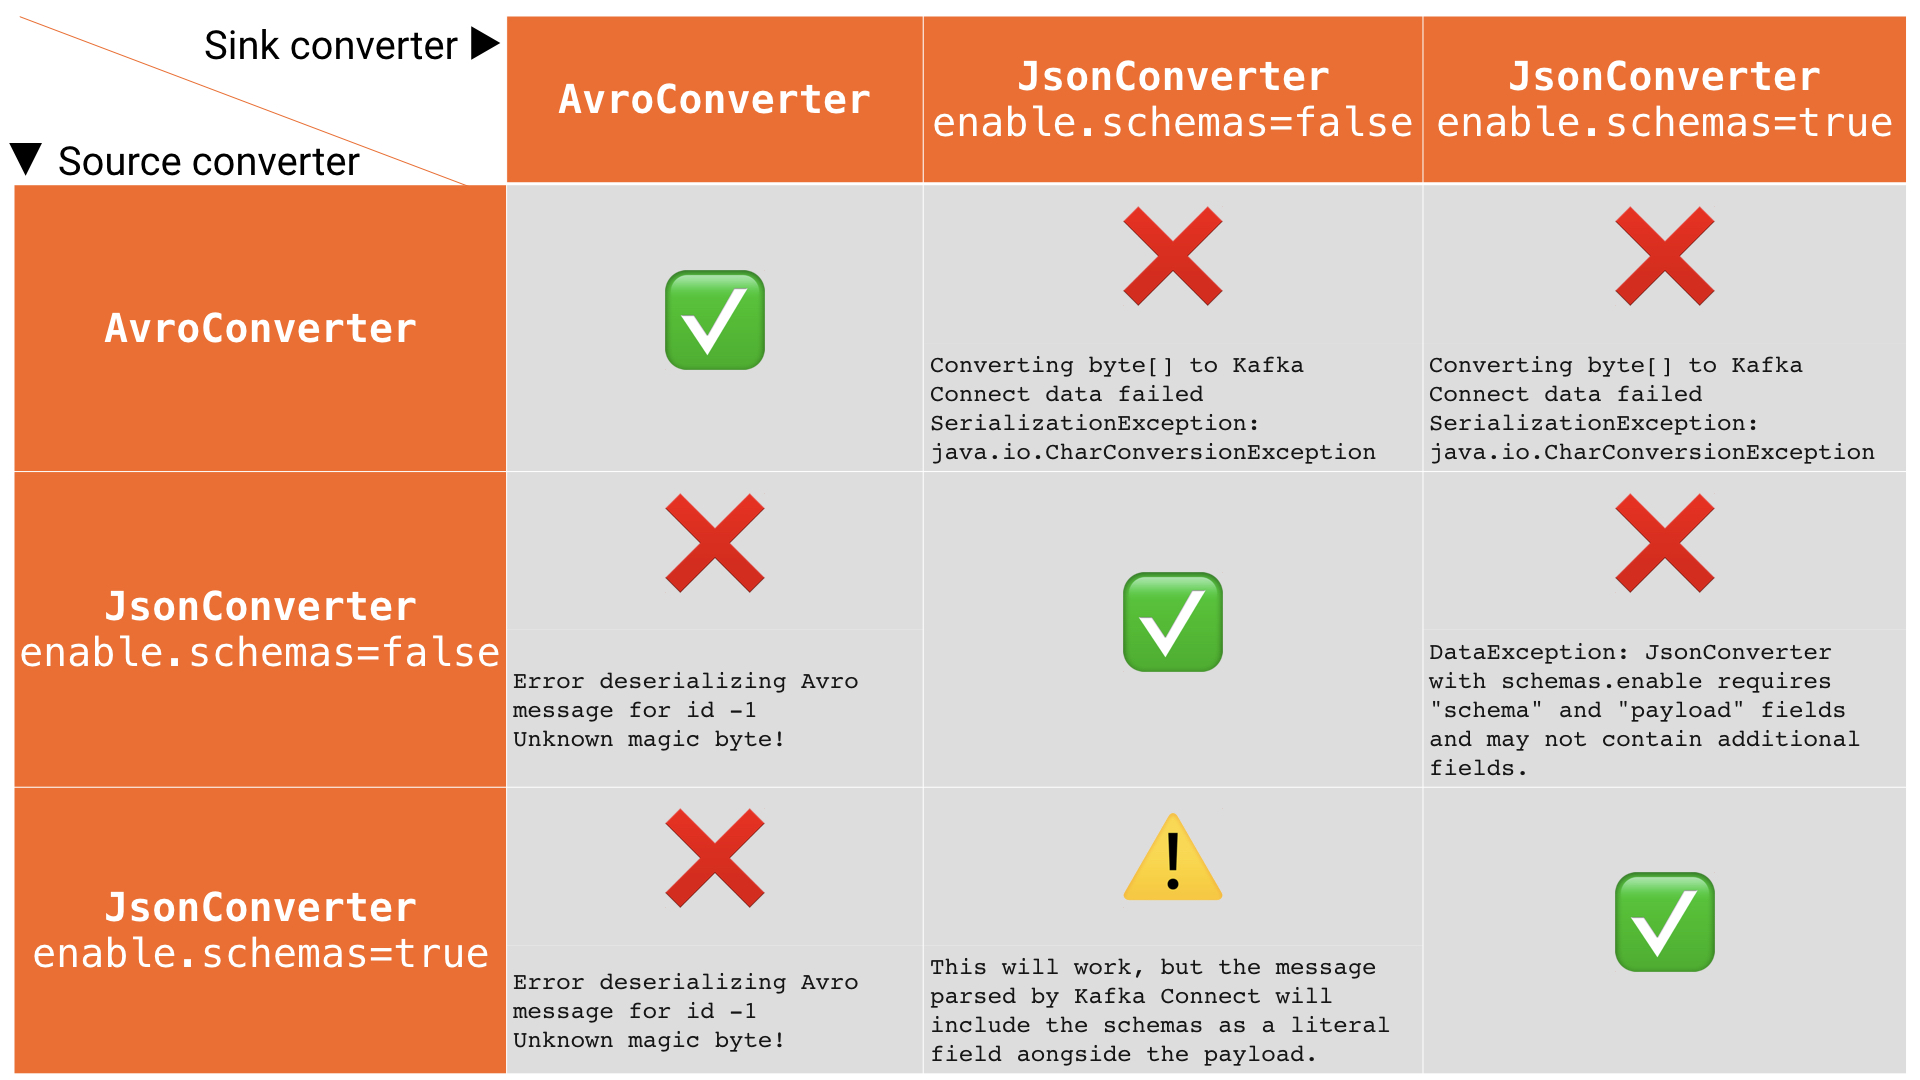 Common errrors you can get from misconfiguring the converters in Kafka Connect